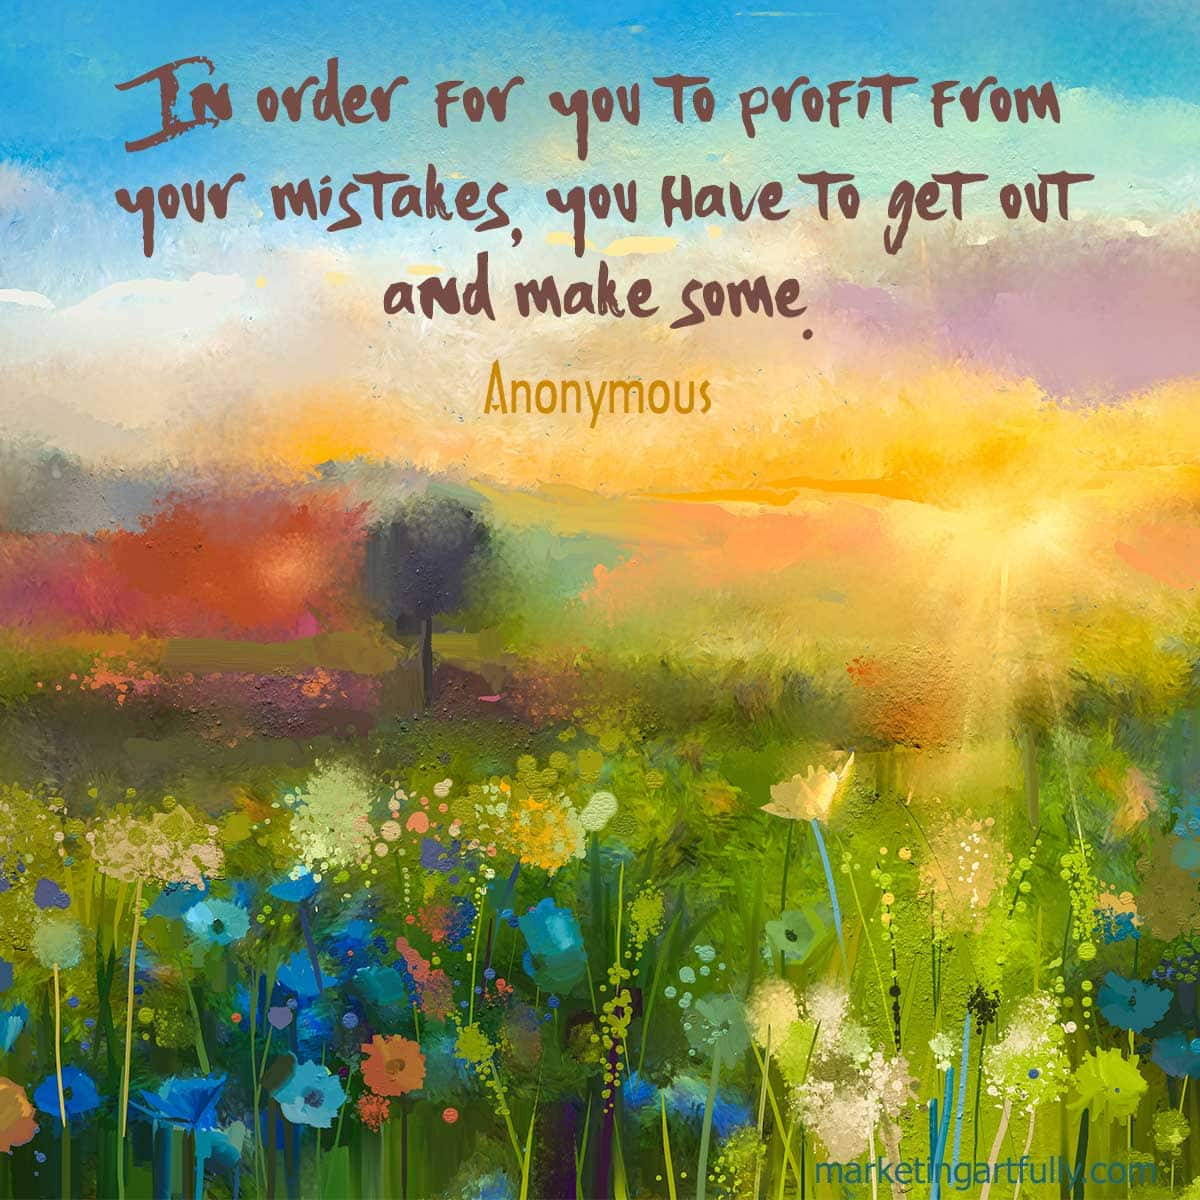 In order for you to profit from your mistakes, you have to get out and make some. Anonymous